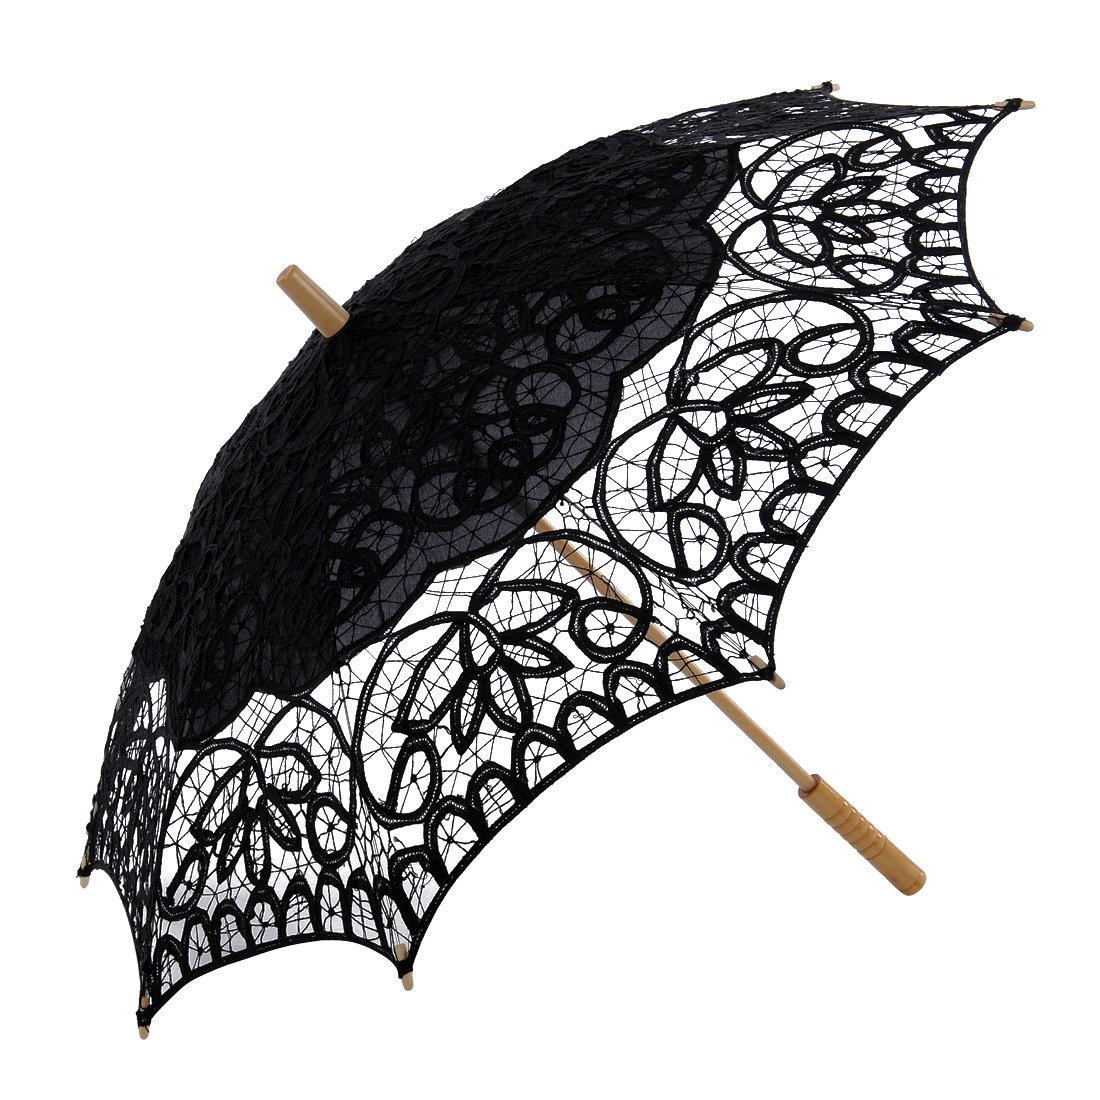 Topwedding Women's Cotton Lace Parasol with A Longer Wood Post Handle by Topwedding (Image #1)